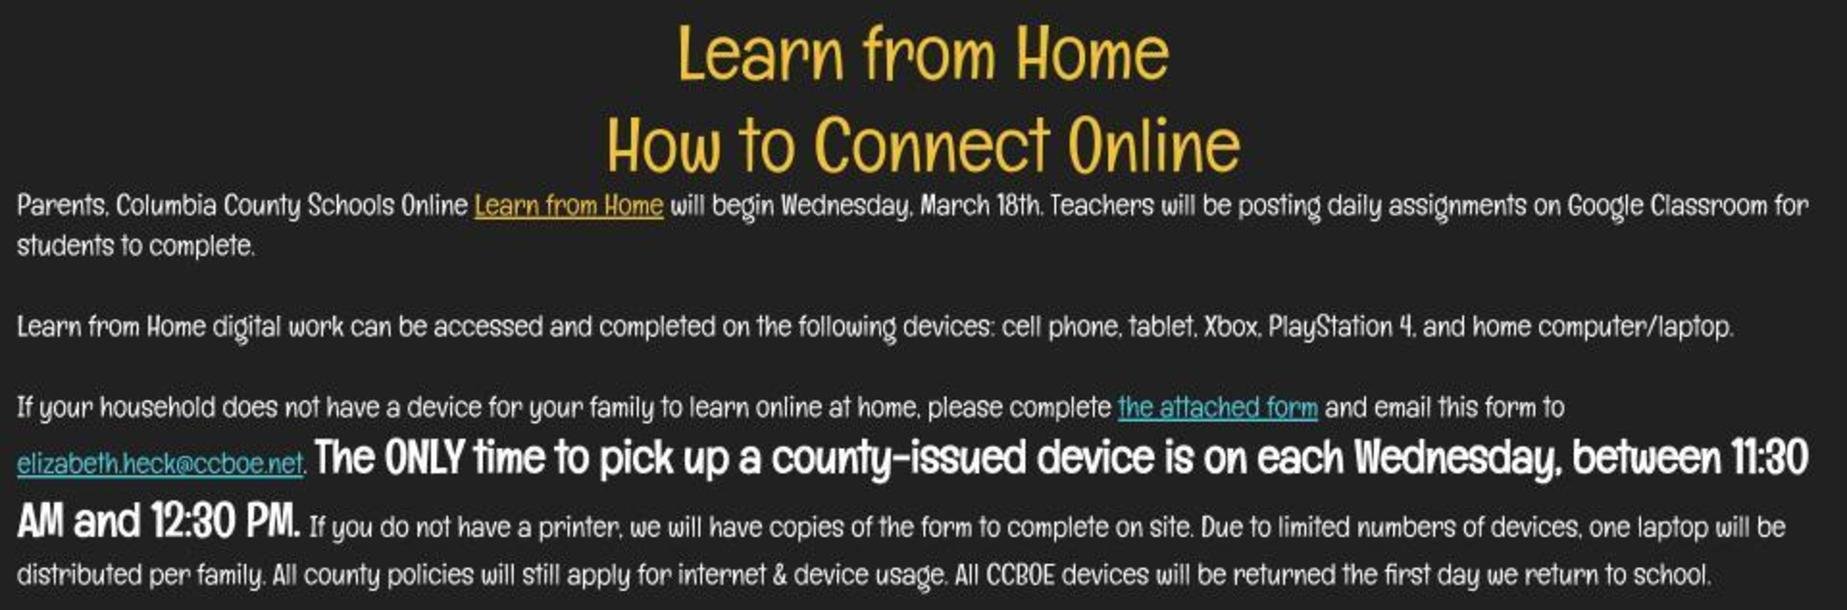 Learn from Home internet columbia county schools